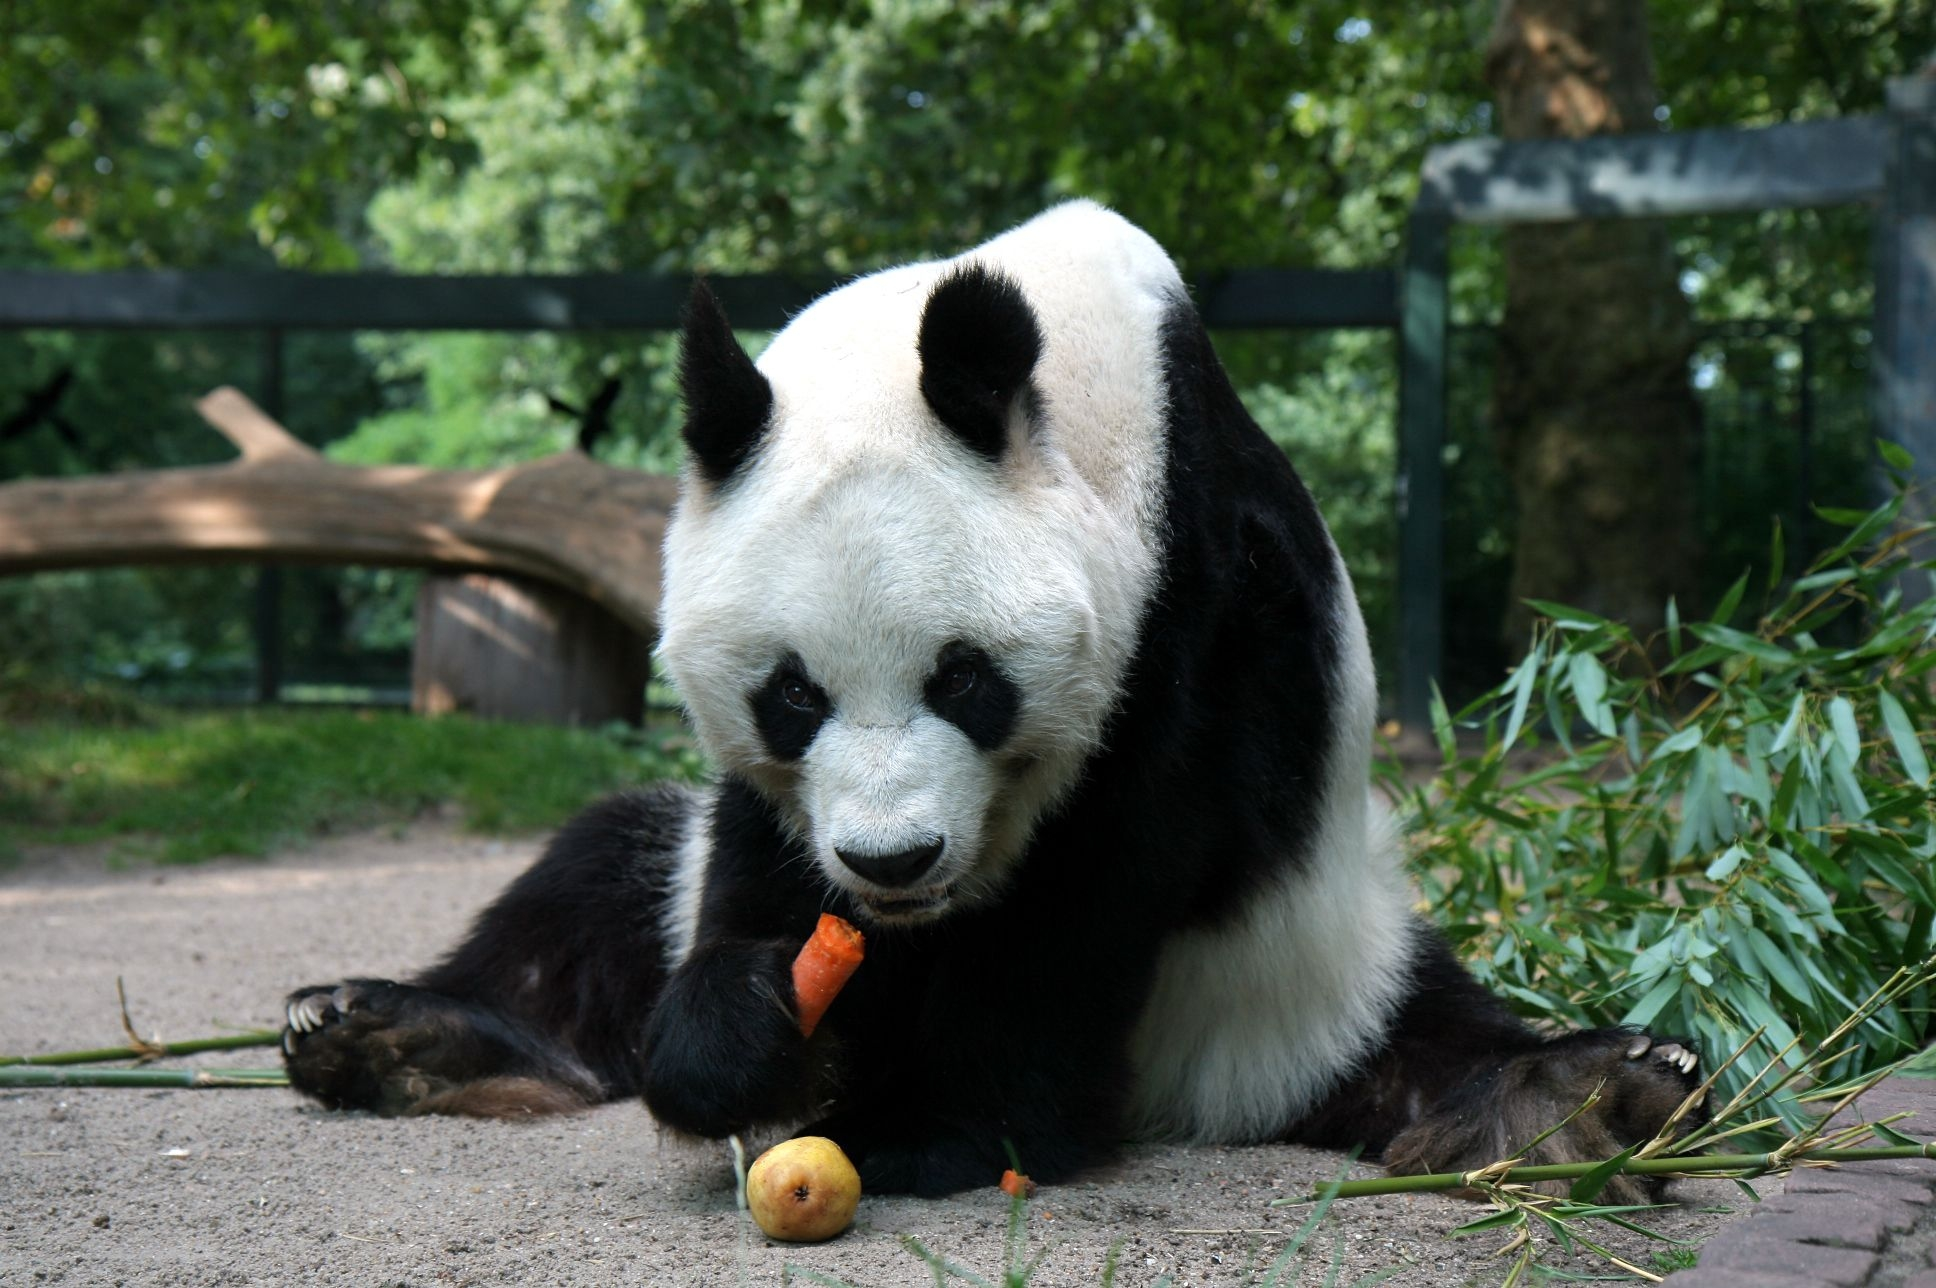 113252 download wallpaper Animals, Panda, Sit, Food screensavers and pictures for free